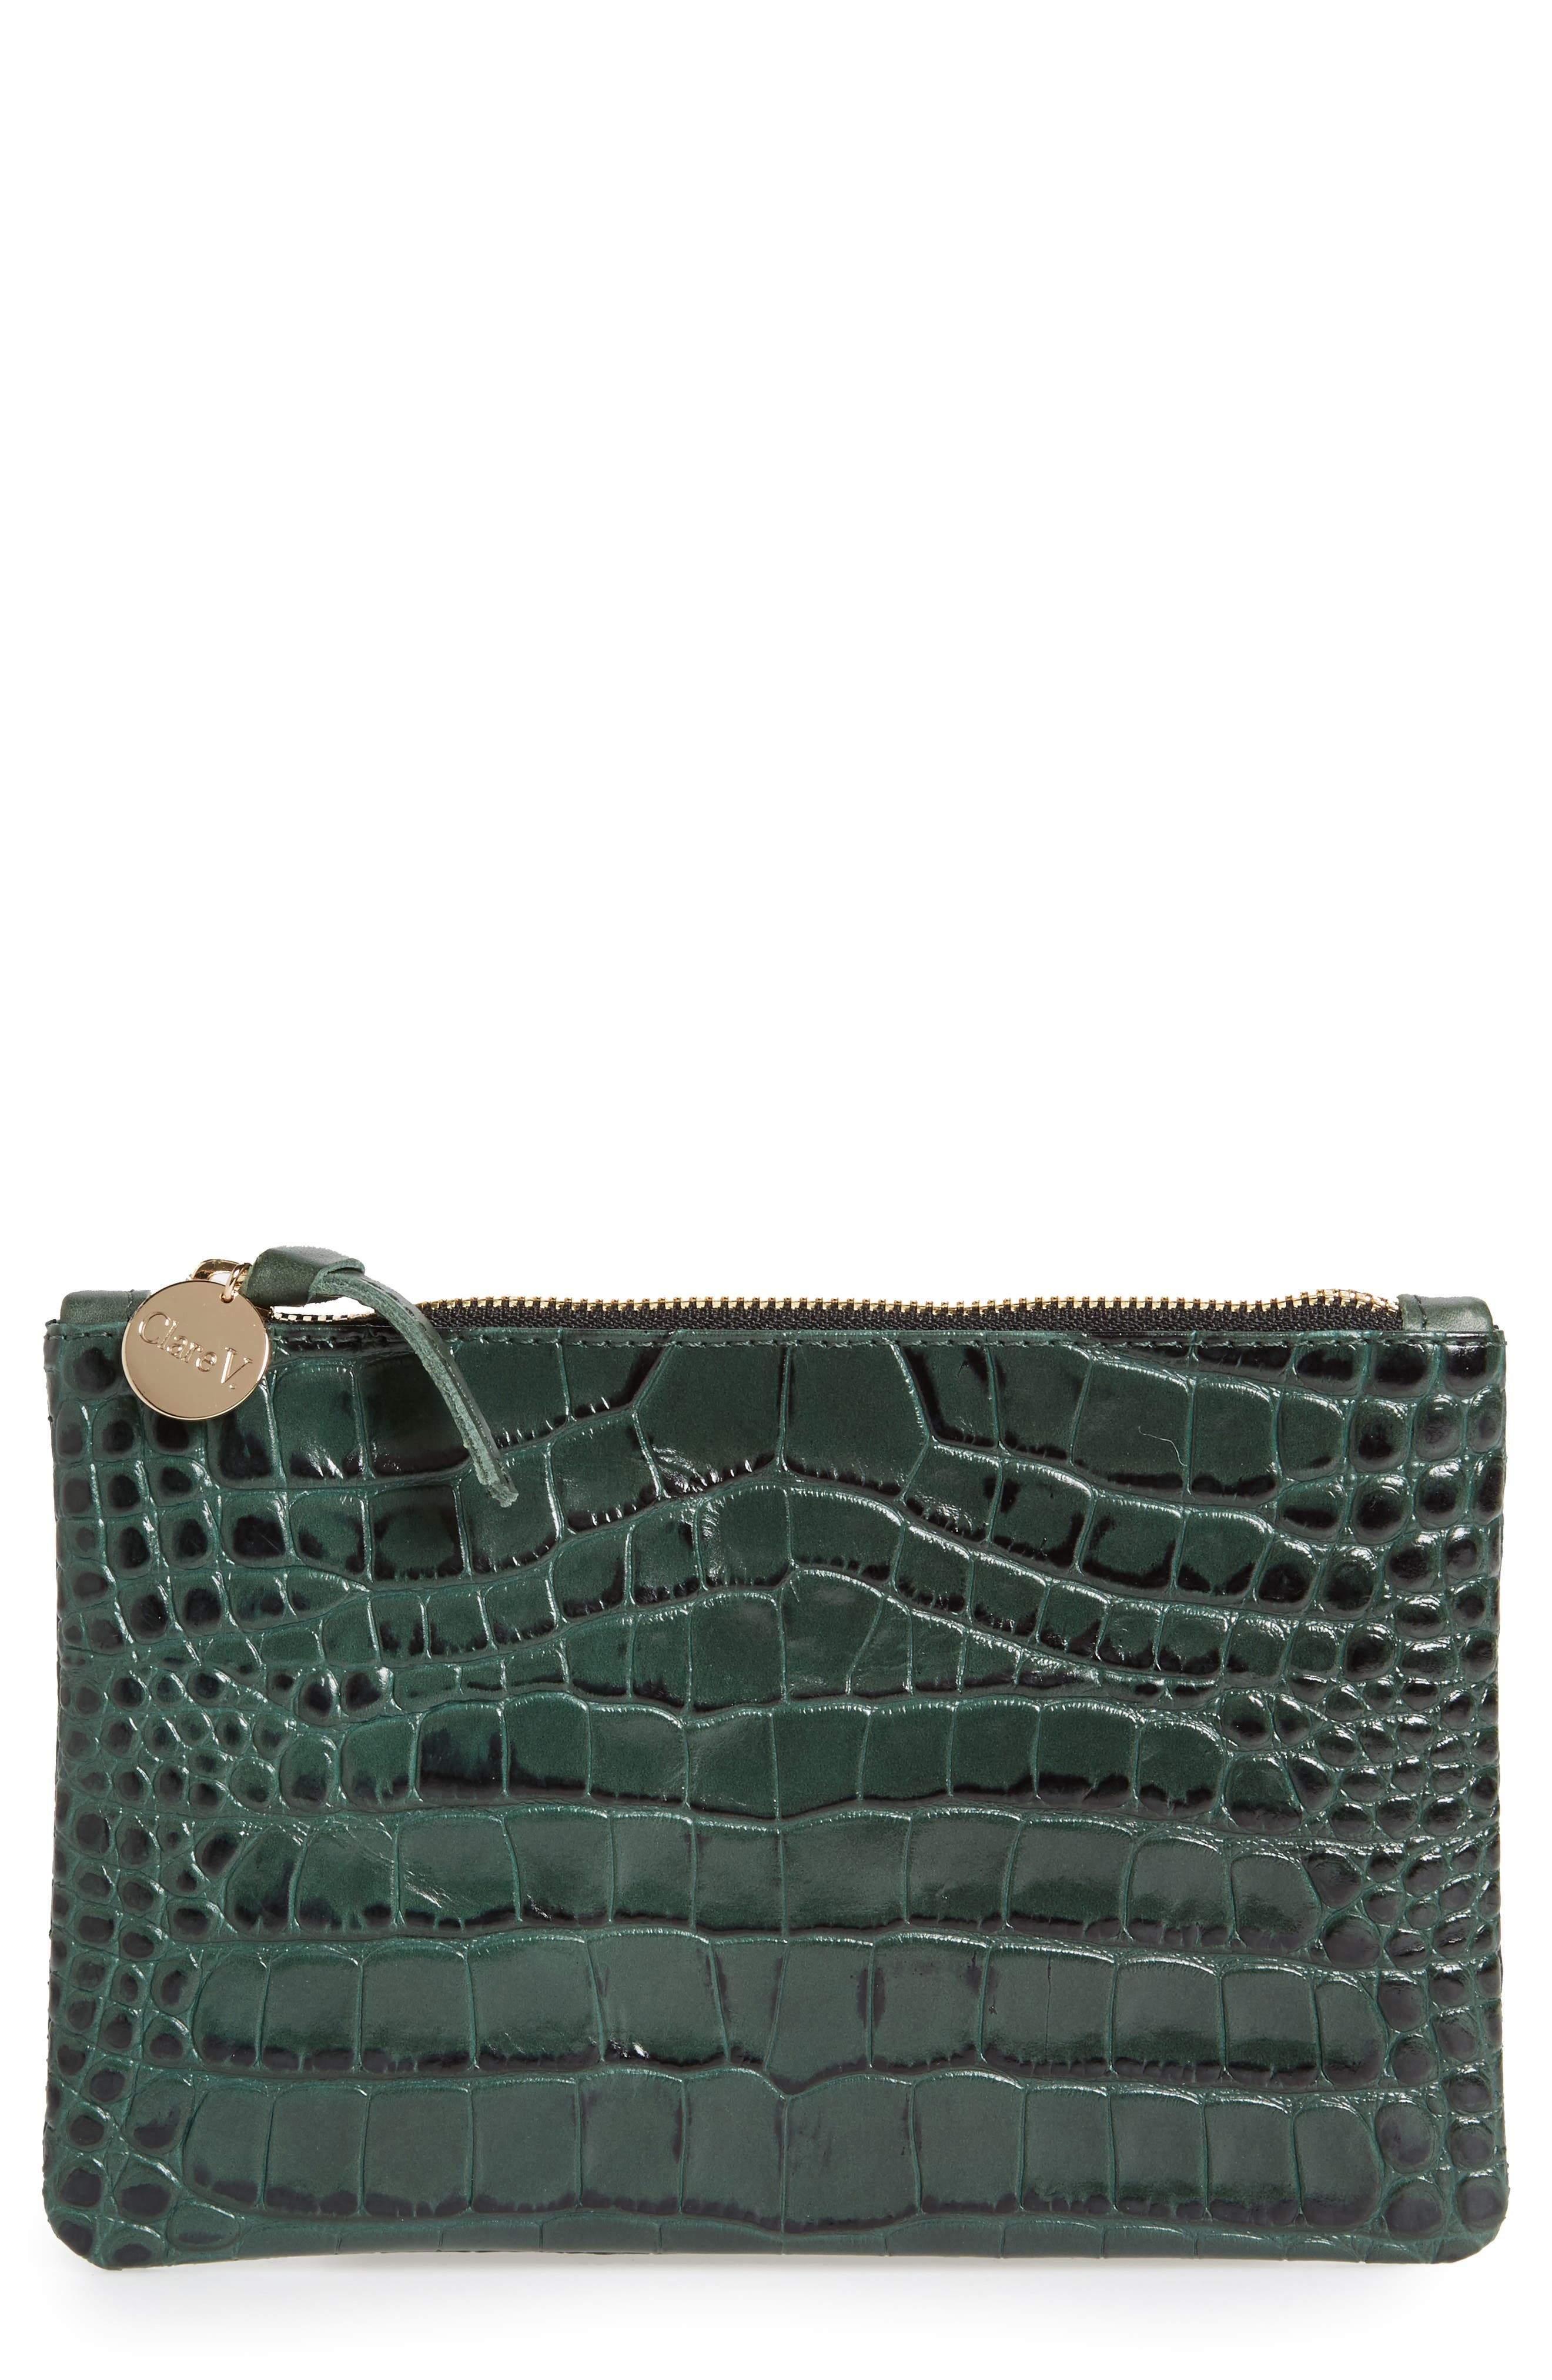 Main Image - Clare V. Croc Embossed Leather Clutch